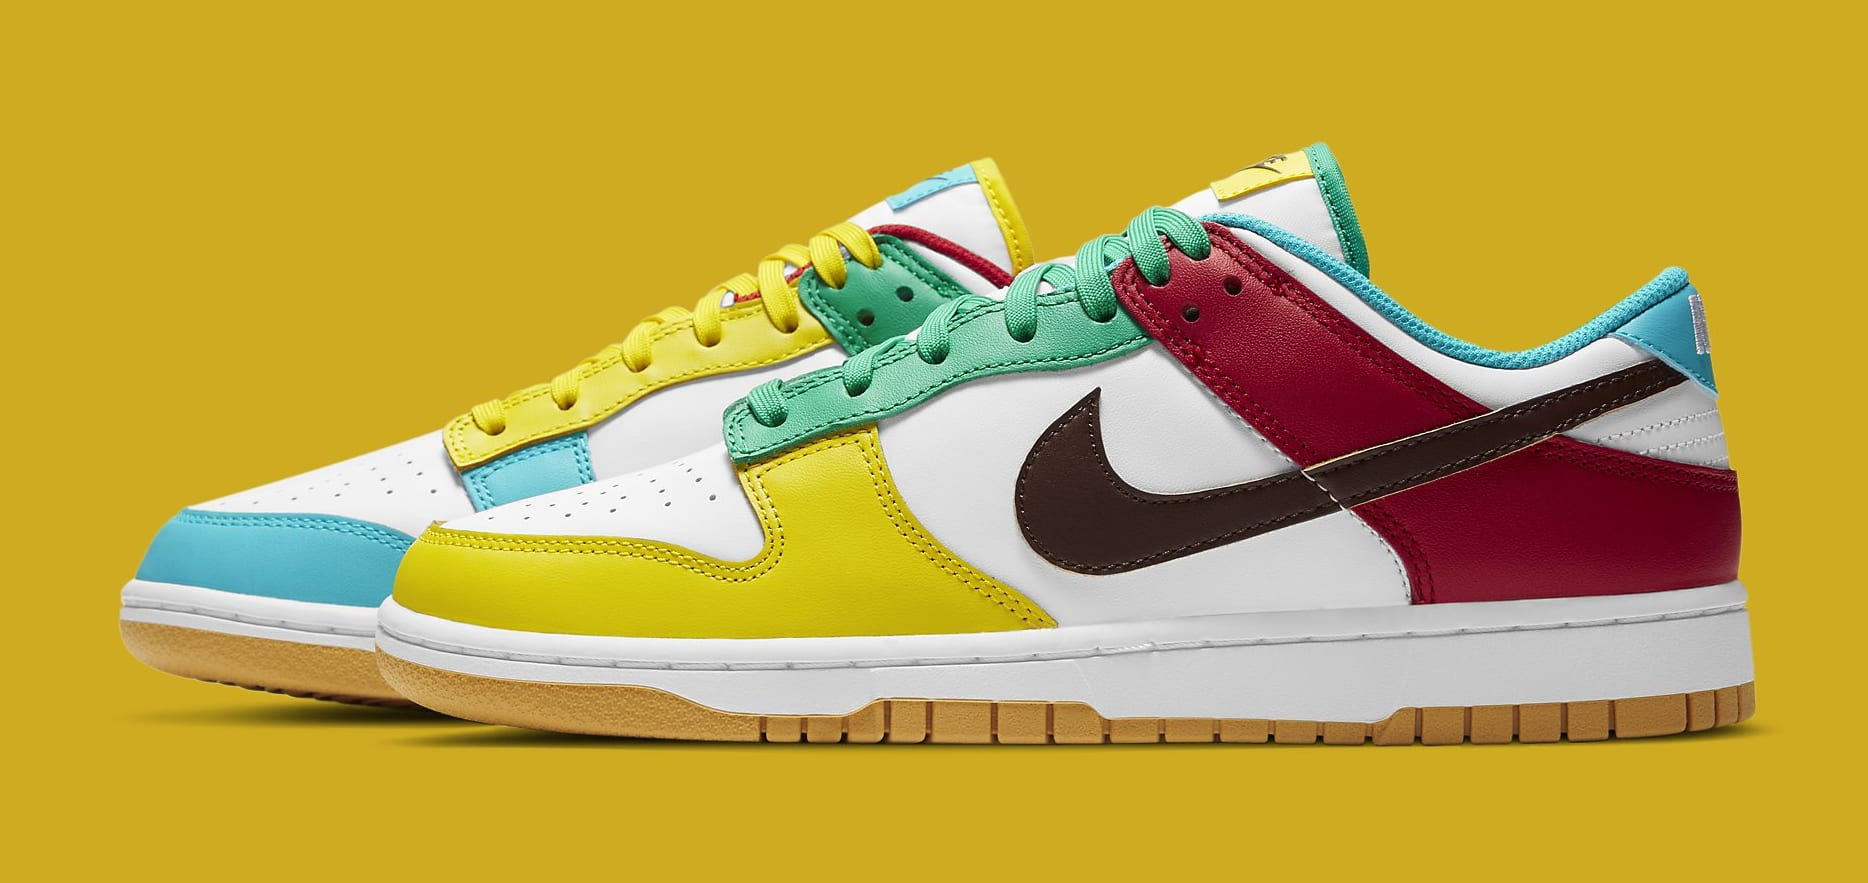 Nike Dunk Low 'Free.99 White' DH0952-100 Lateral